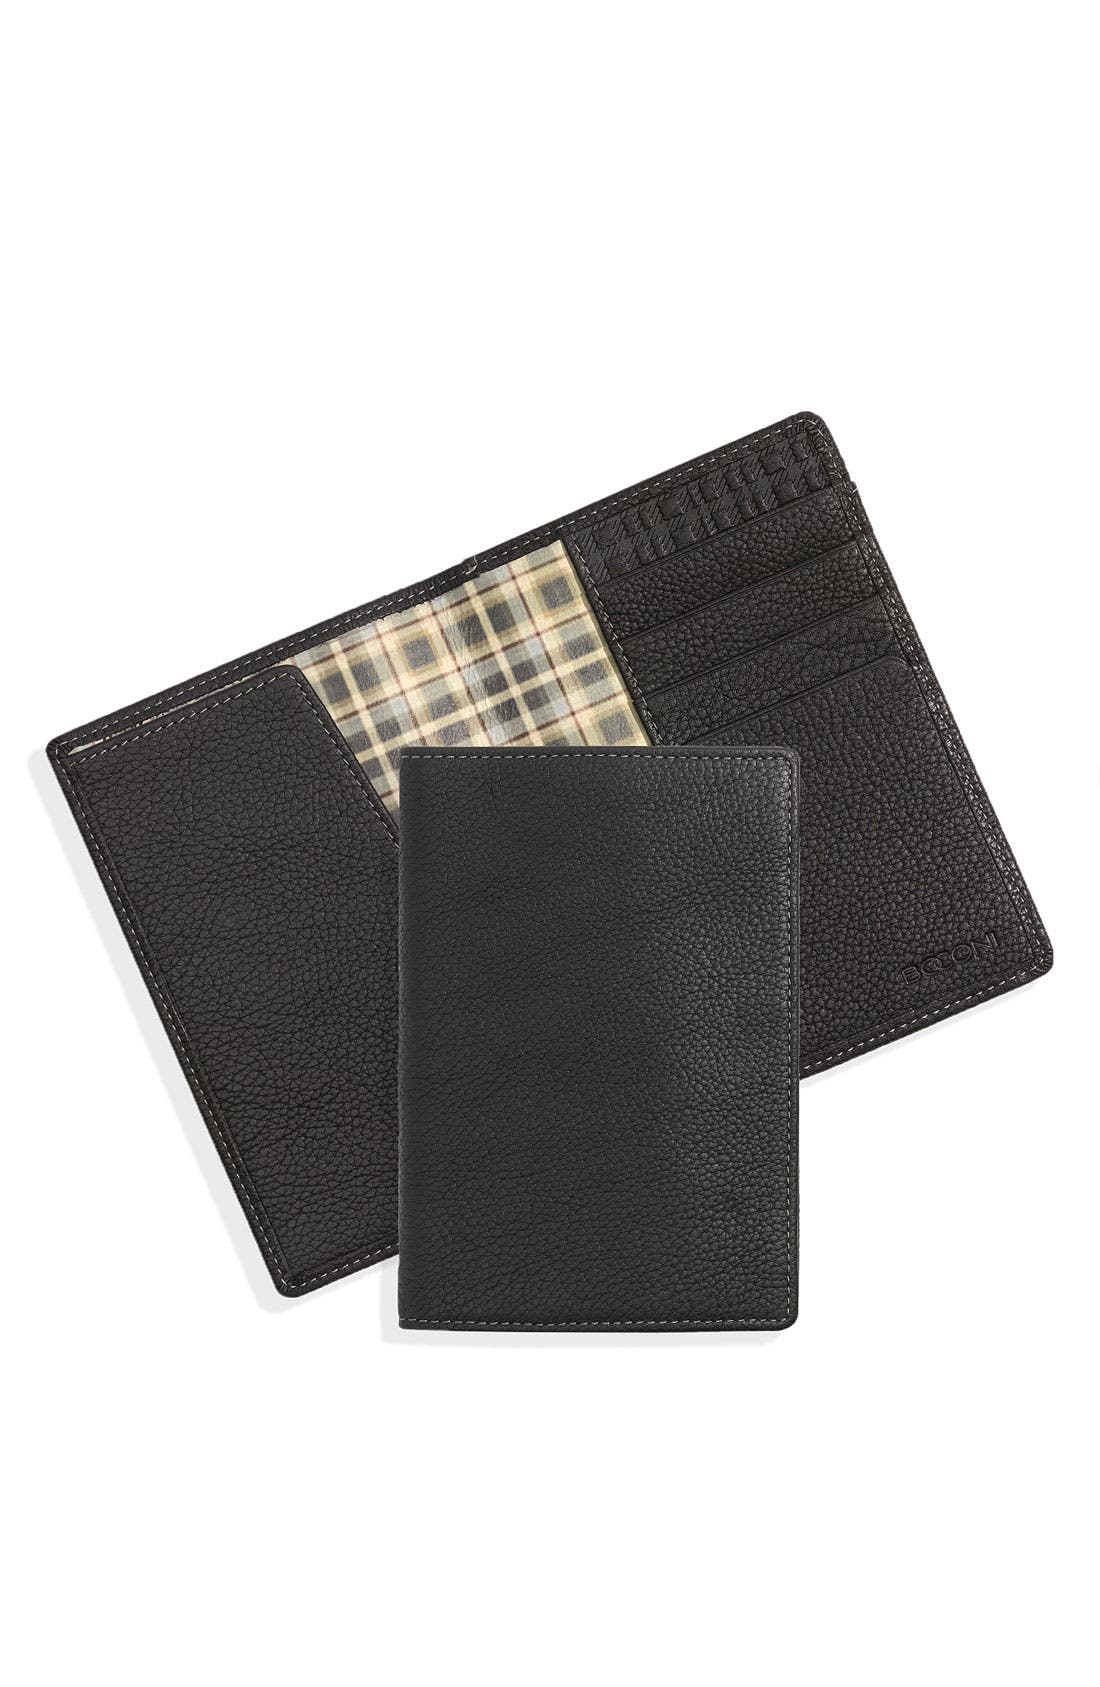 Passport Case,                         Main,                         color, Black